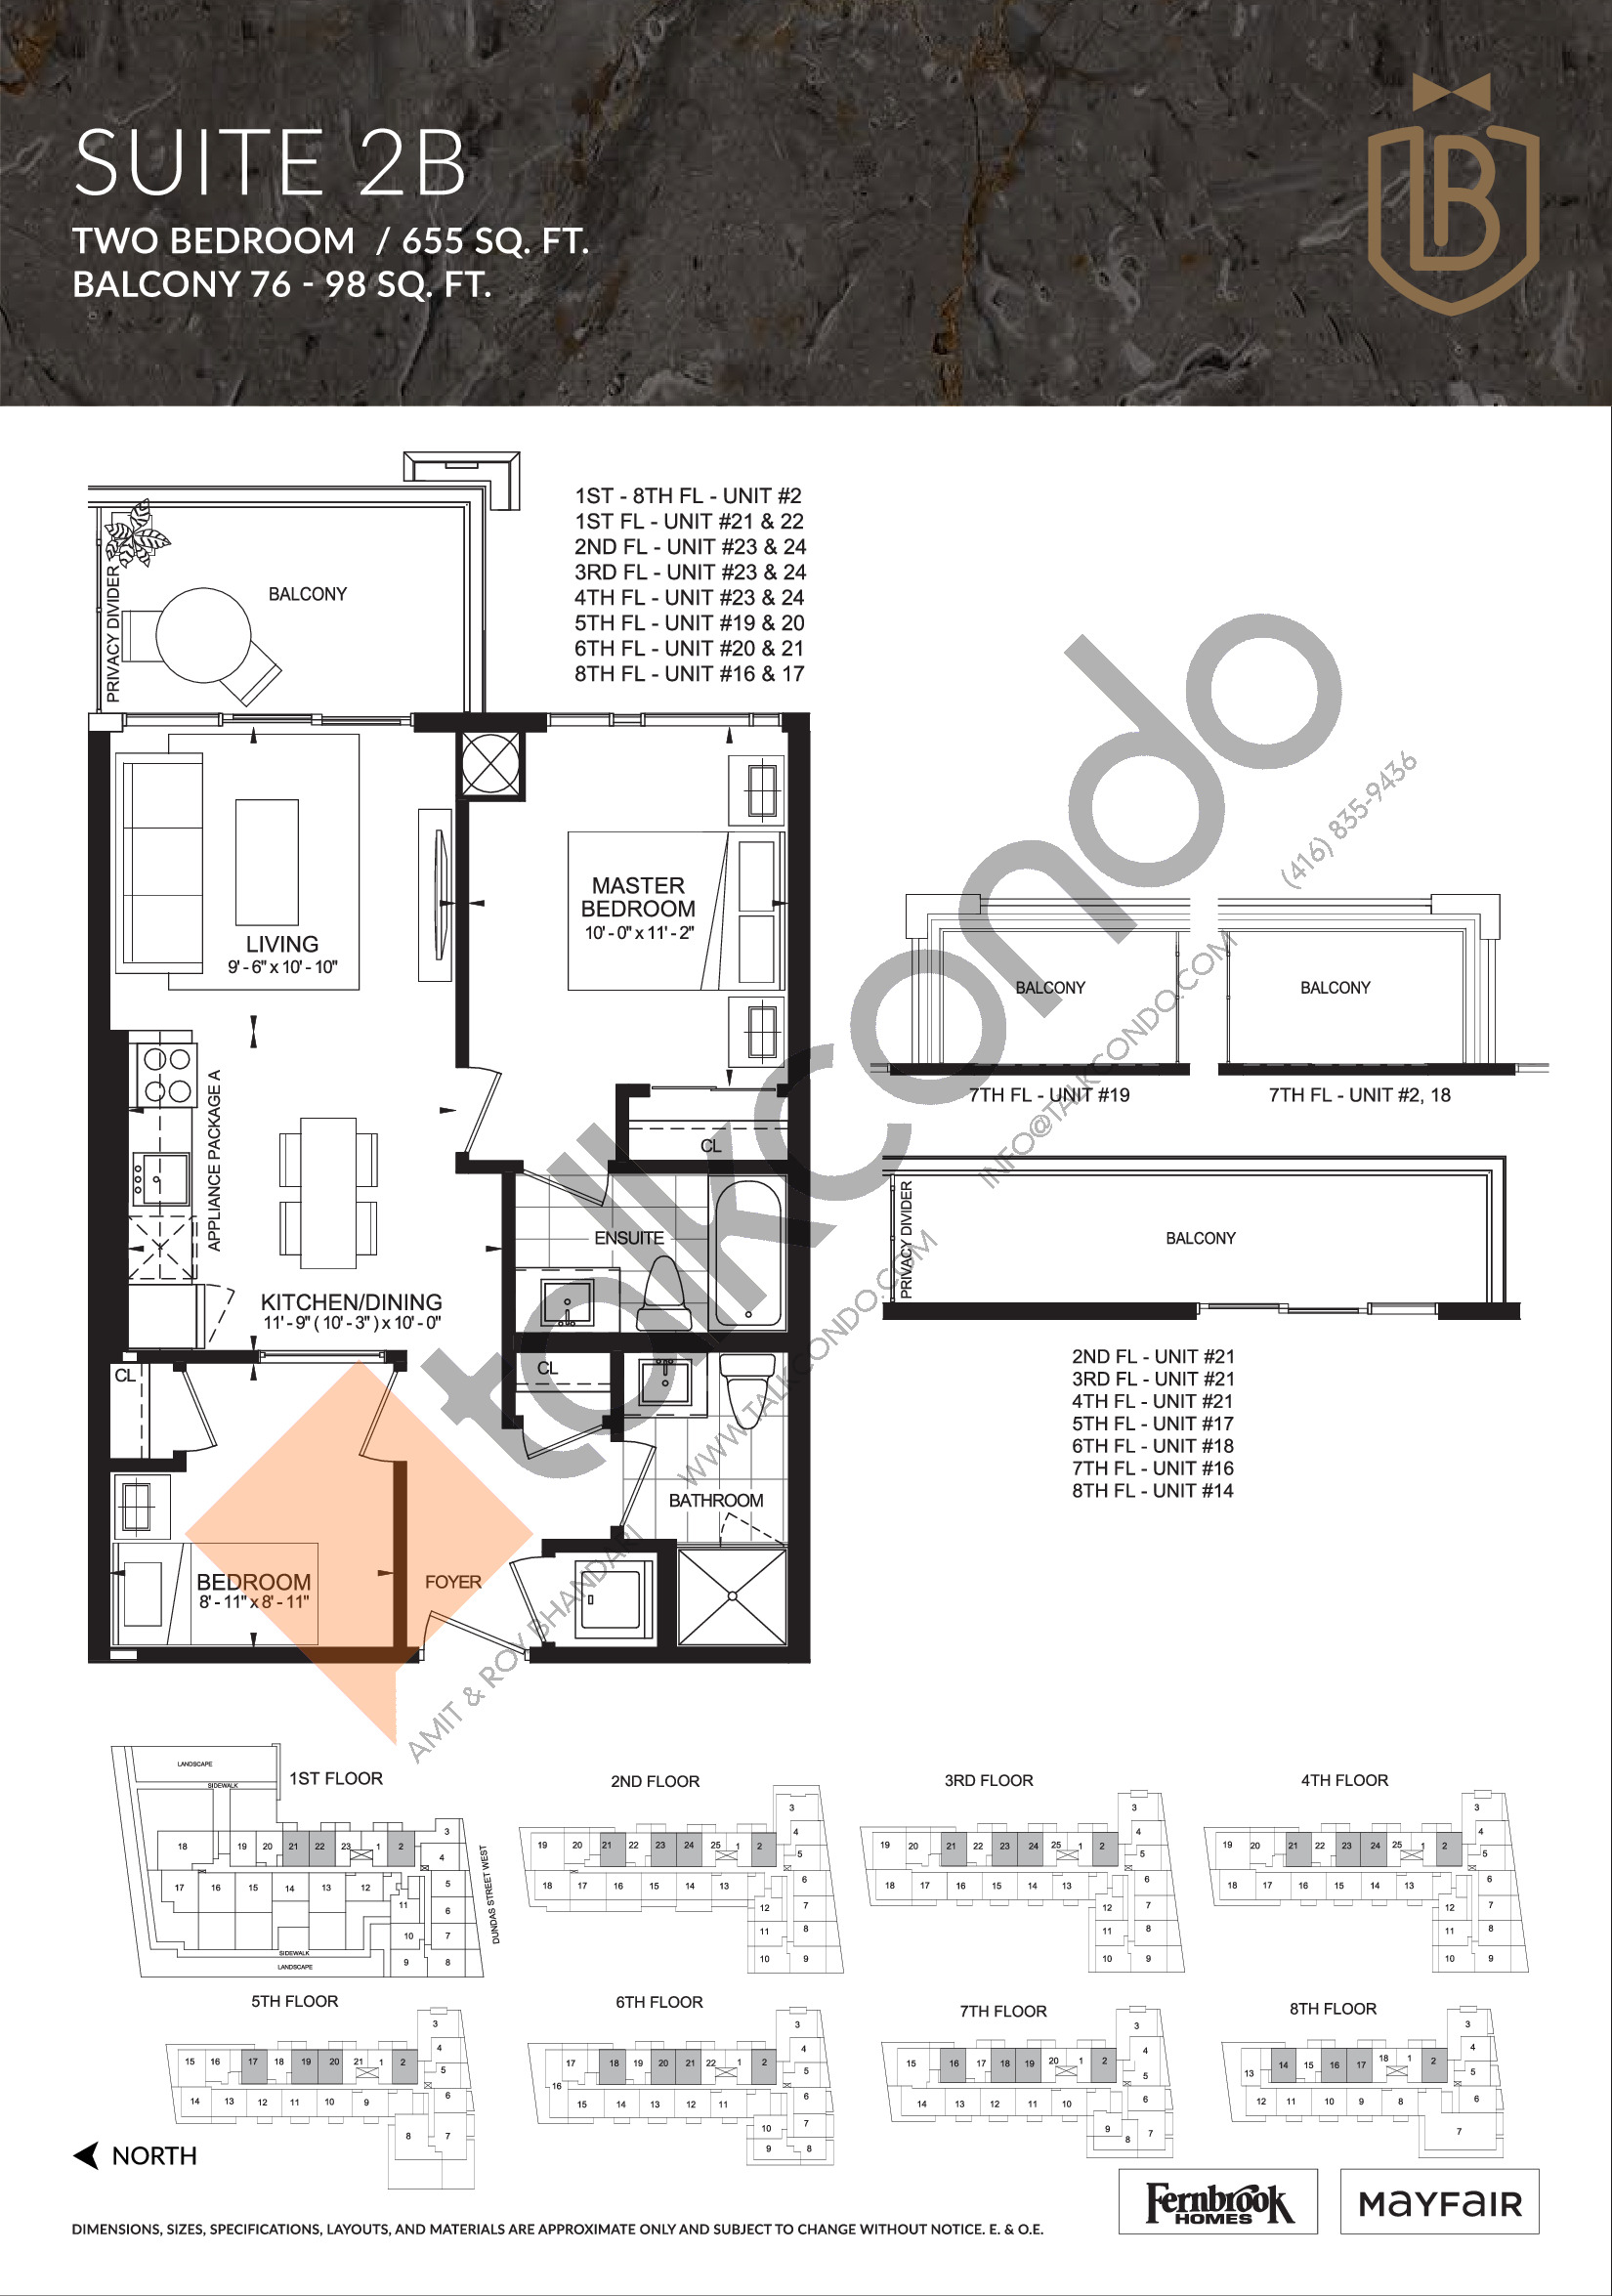 Suite 2B Floor Plan at The Butler Condos - 655 sq.ft